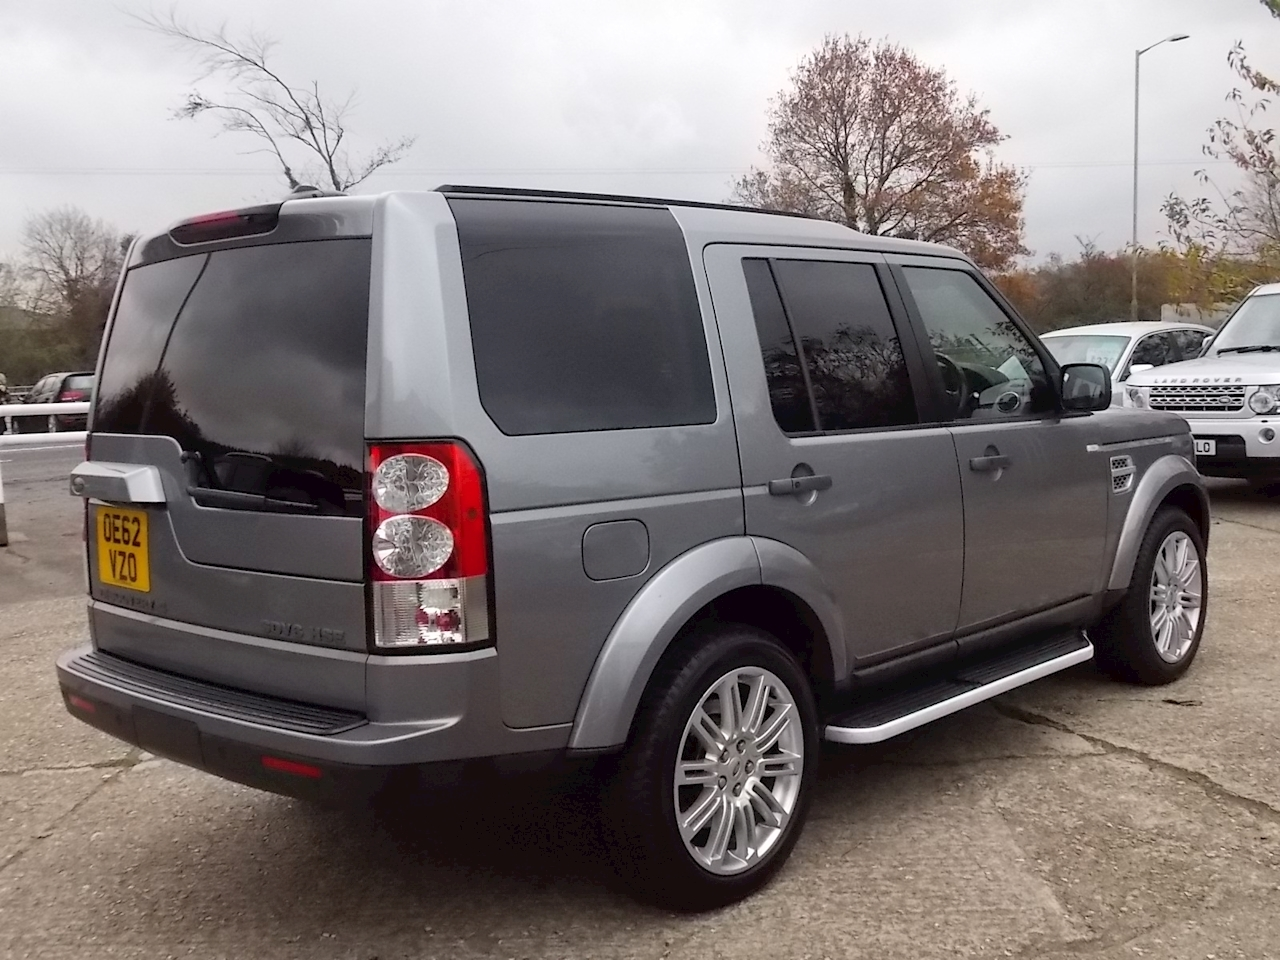 Land Rover Discovery 4 Sdv6 Hse 3.0 5dr Estate Automatic Diesel